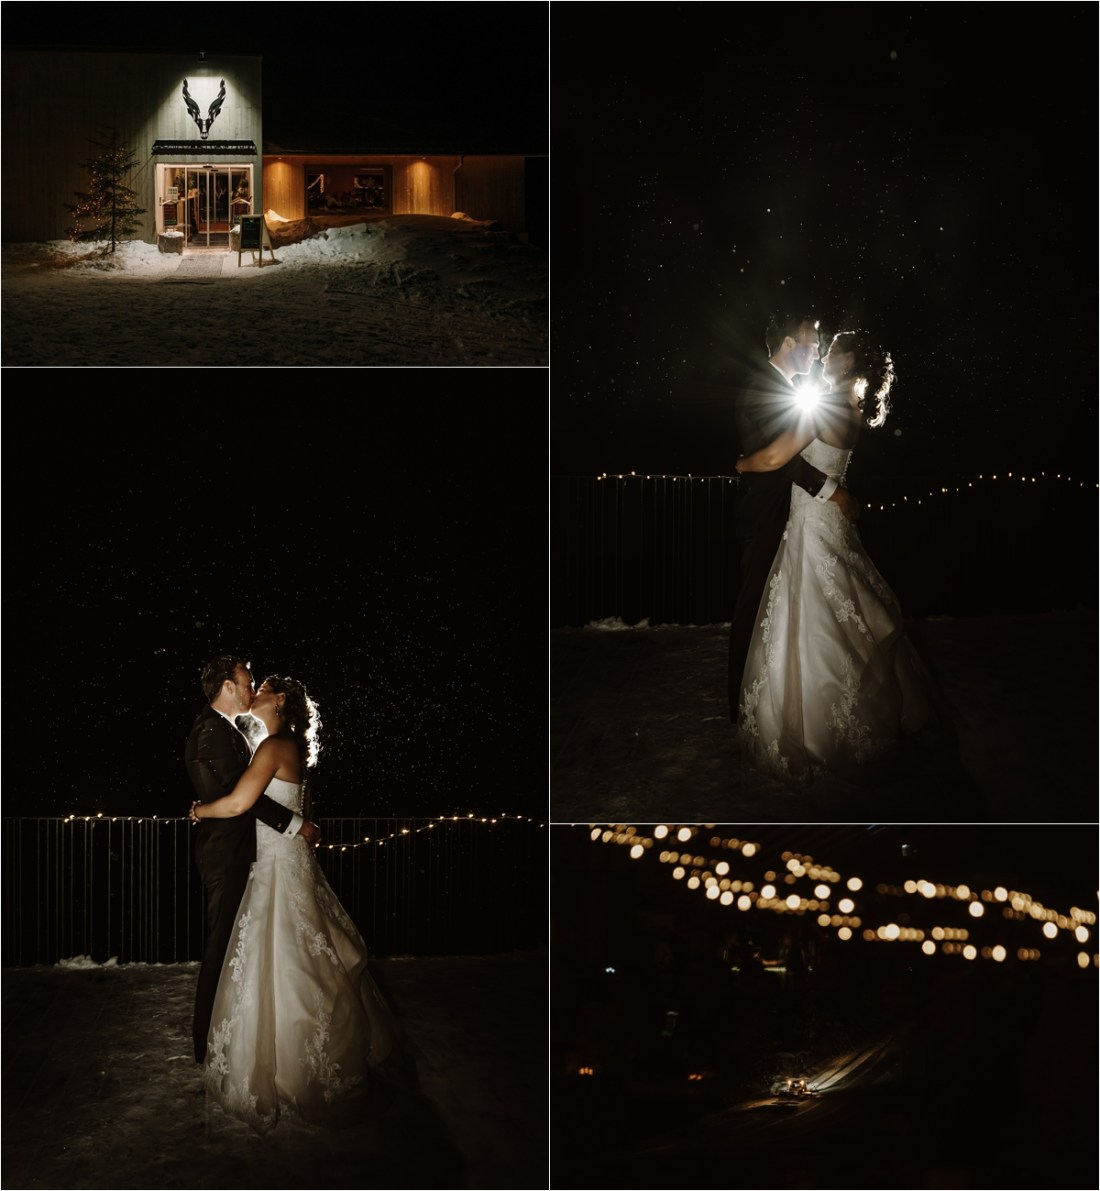 Night portraits of the bride and groom at the Schmiedhofalm mountain restaurant in Austria by Wild Connections Photography